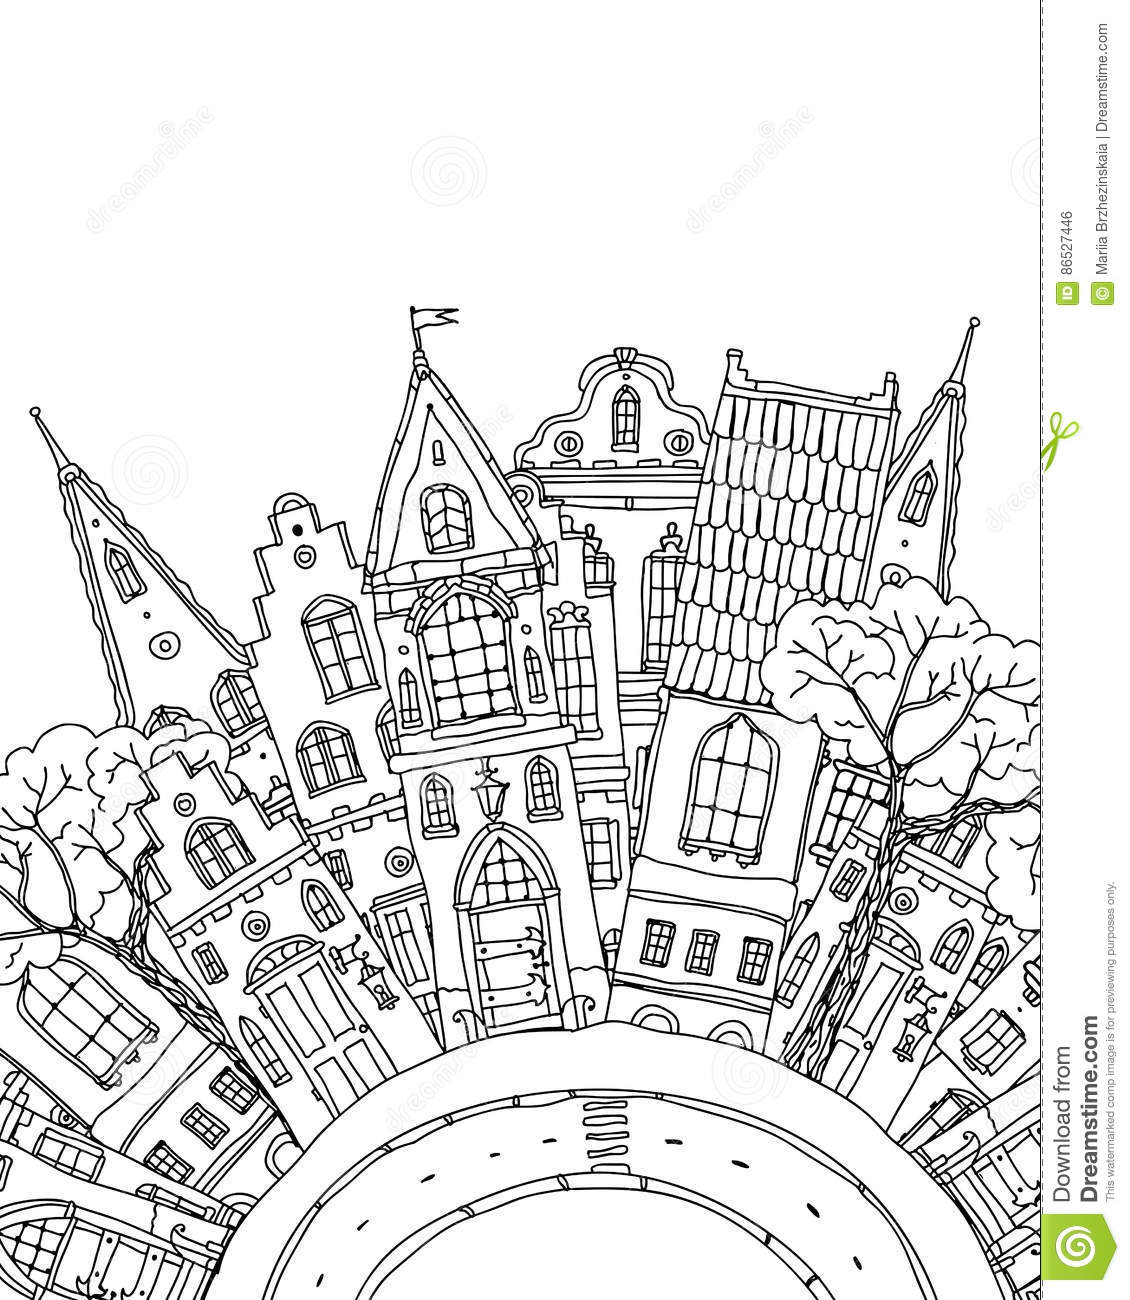 Pattern for coloring book with artistically house magic Coloring book album download